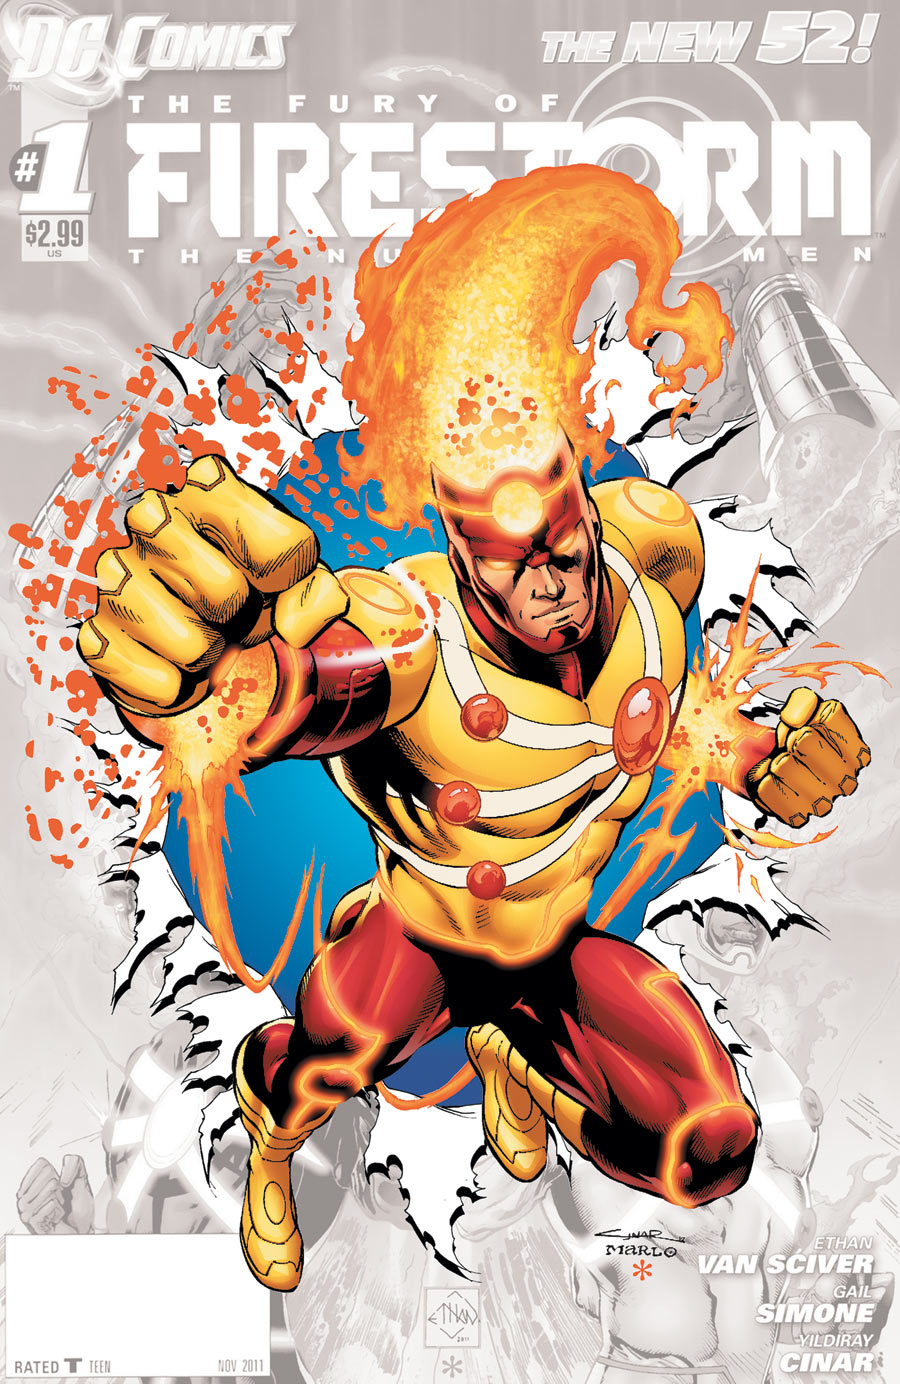 Fury of Firestorm: The Nuclear Man #0 cover by Yildiray Cinar & Marlo Alquiza